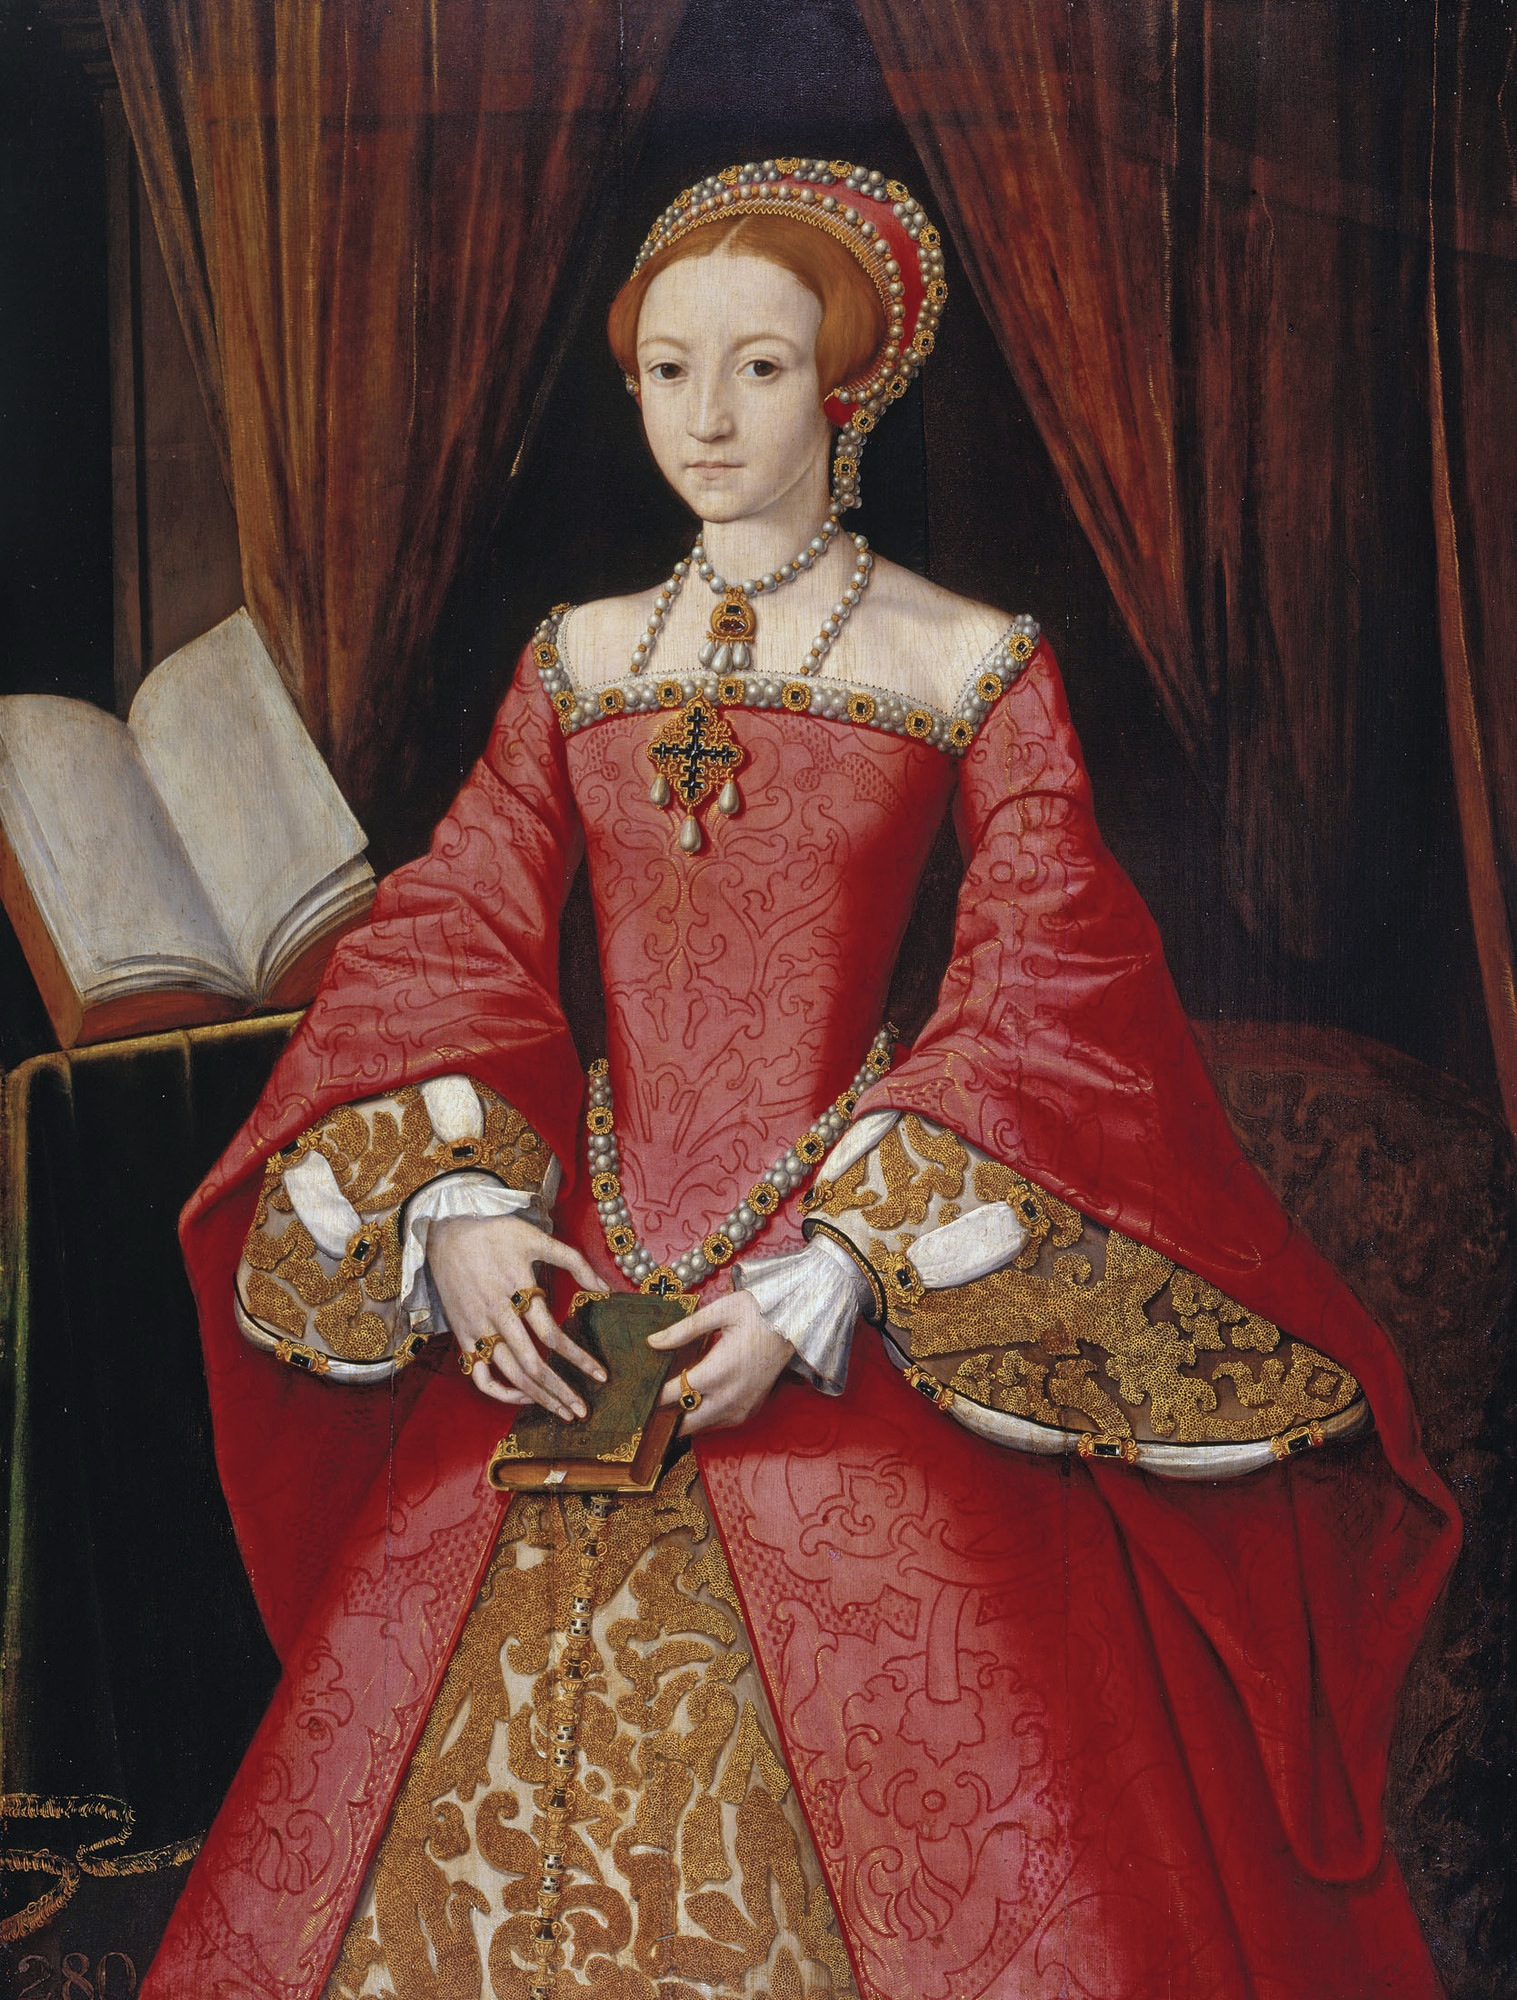 Elizabeth, the daughter of Henry and Anne Boleyn, the future Queen Elizabeth I.